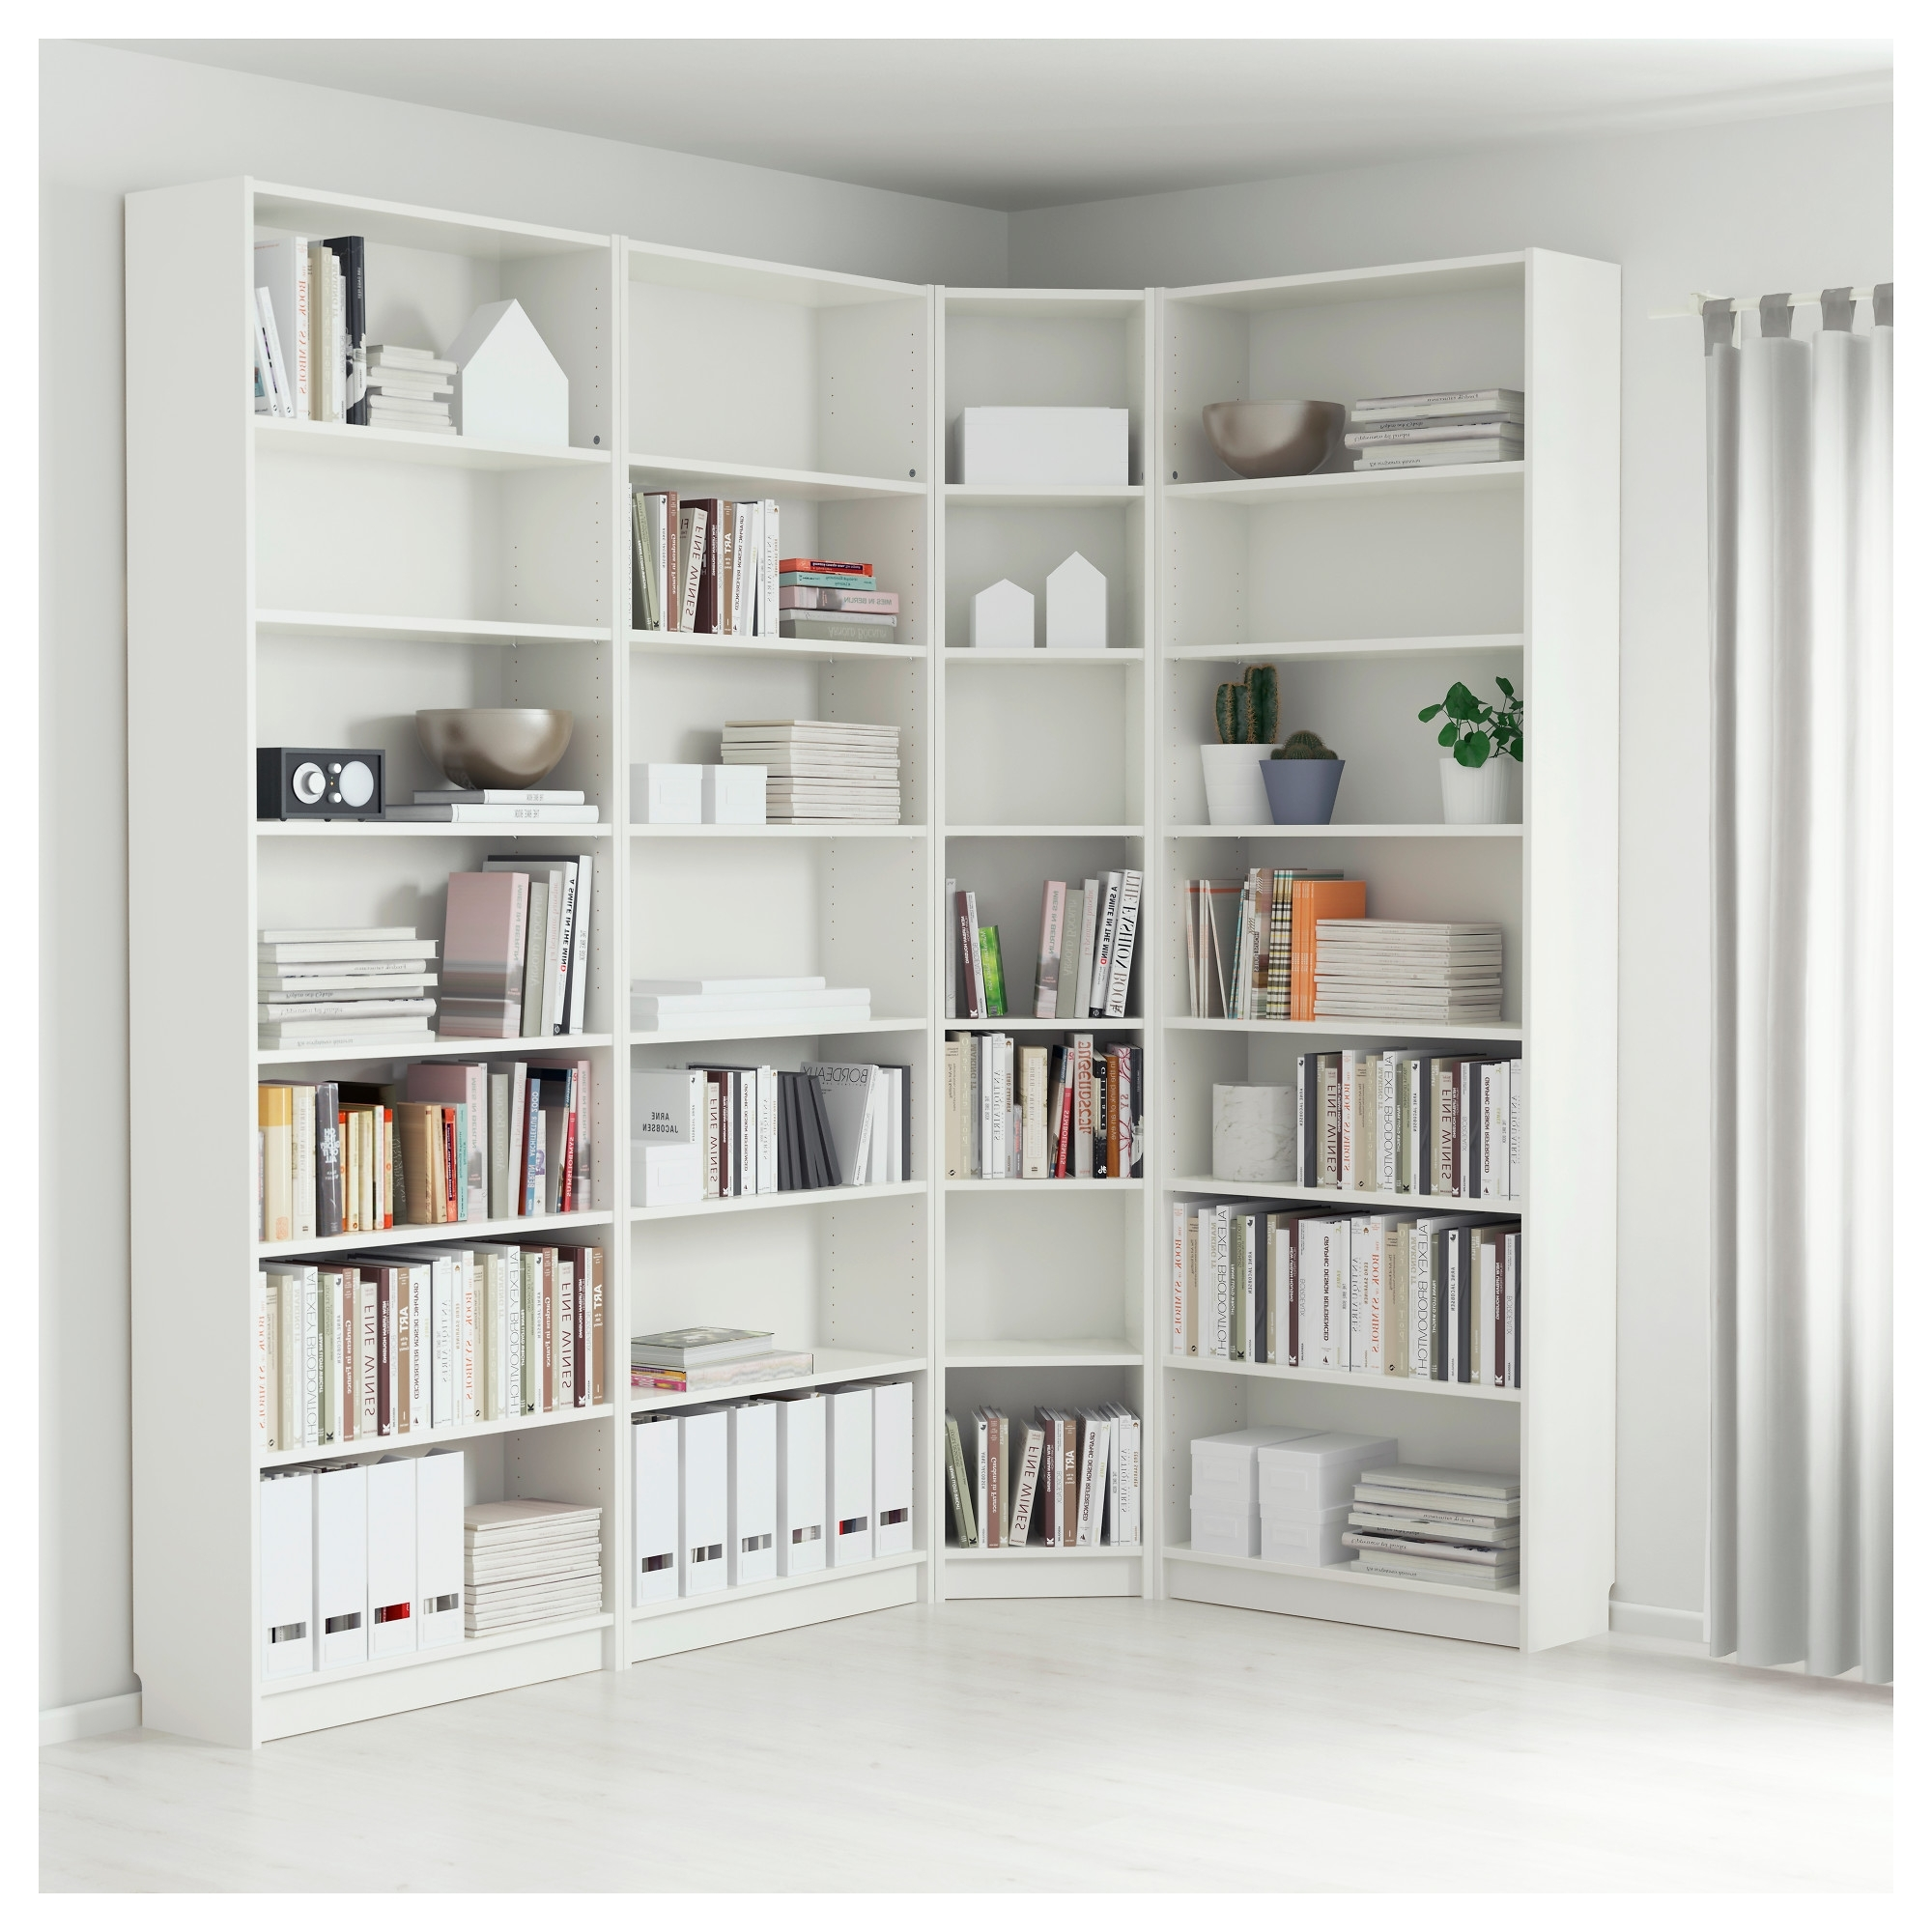 spacious look to the home long make mitlyxl room low bookshelf bookcase decor